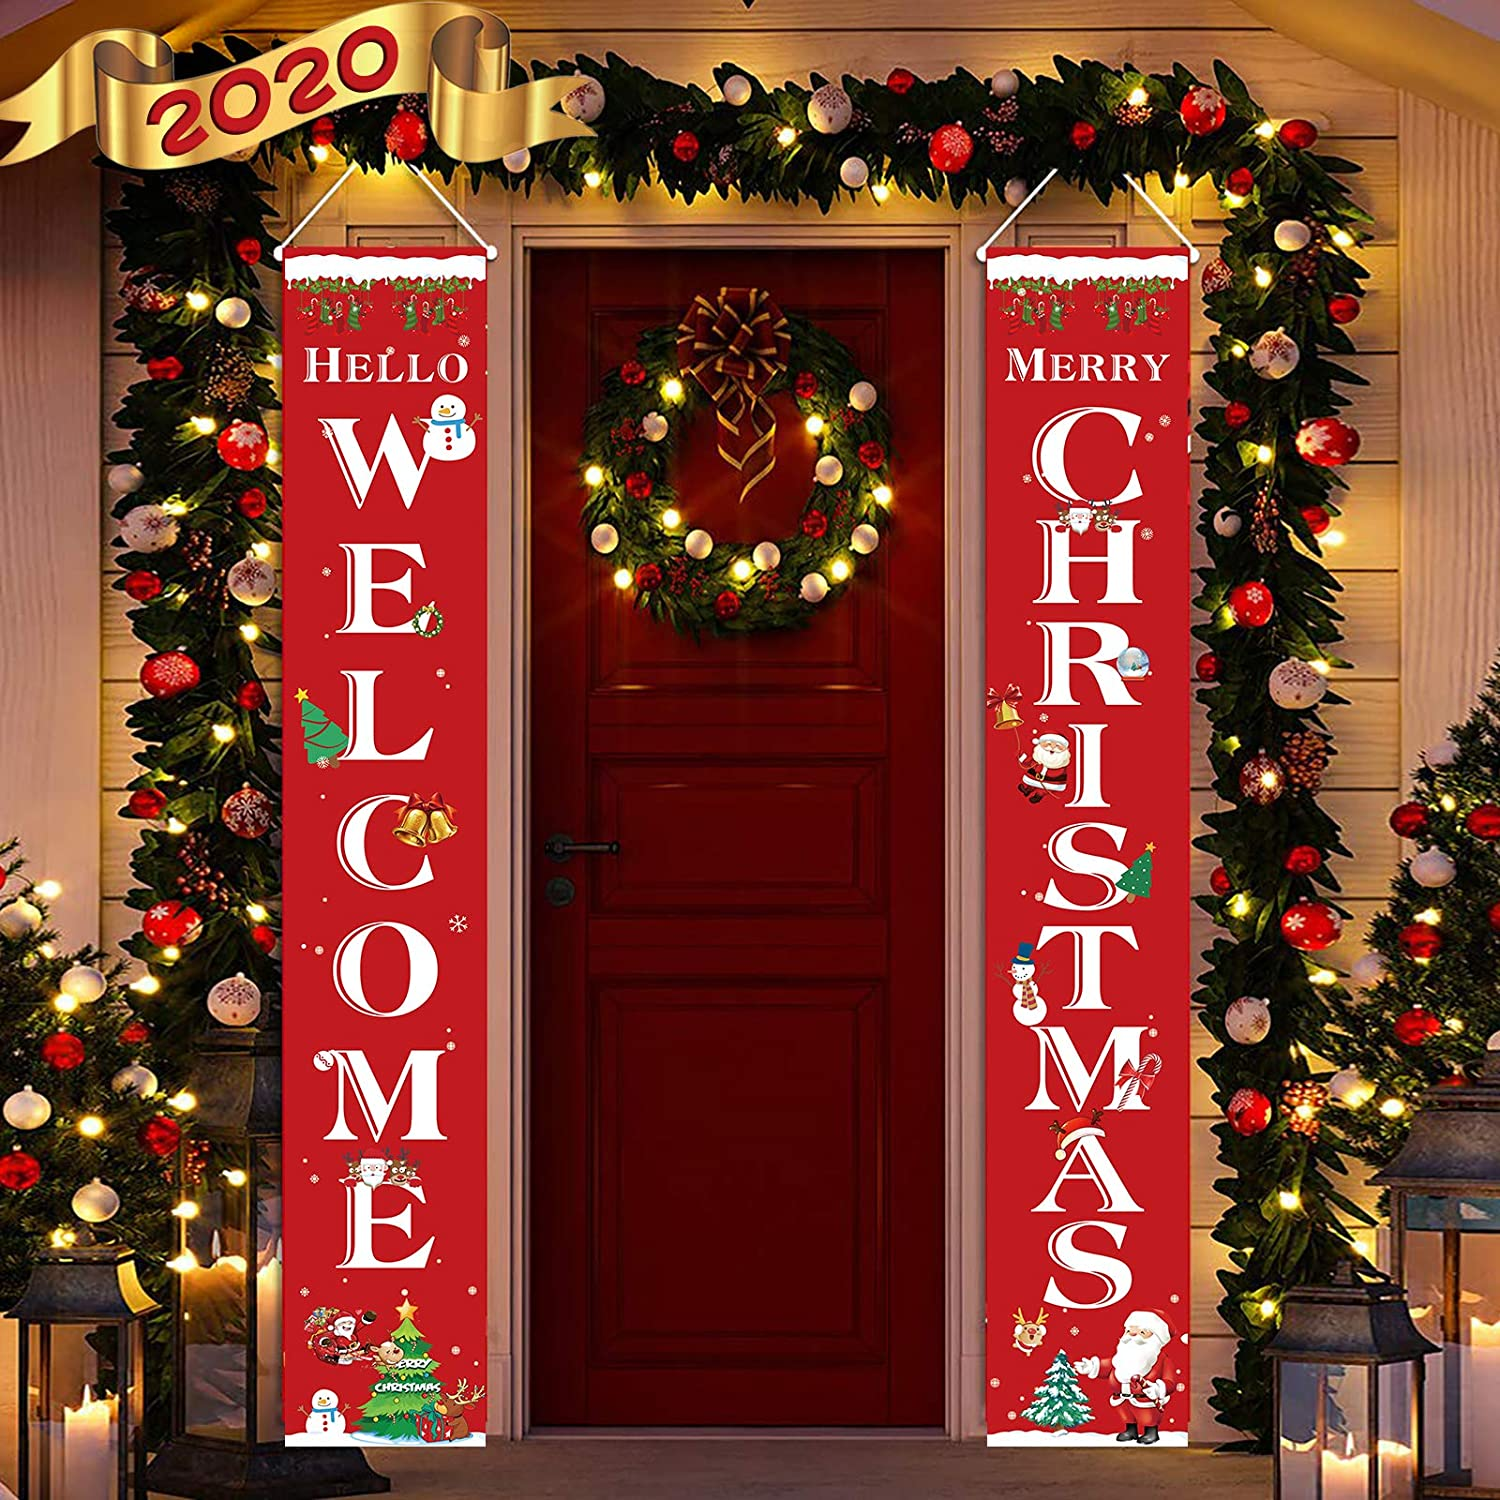 Christmas Decoration Porch Sign 2 Pieces - Welcome Merry Christmas Hanging Banners, Party Supplies for Holiday Home Outdoor Indoor Porch Door Christmas Decor - Red 2